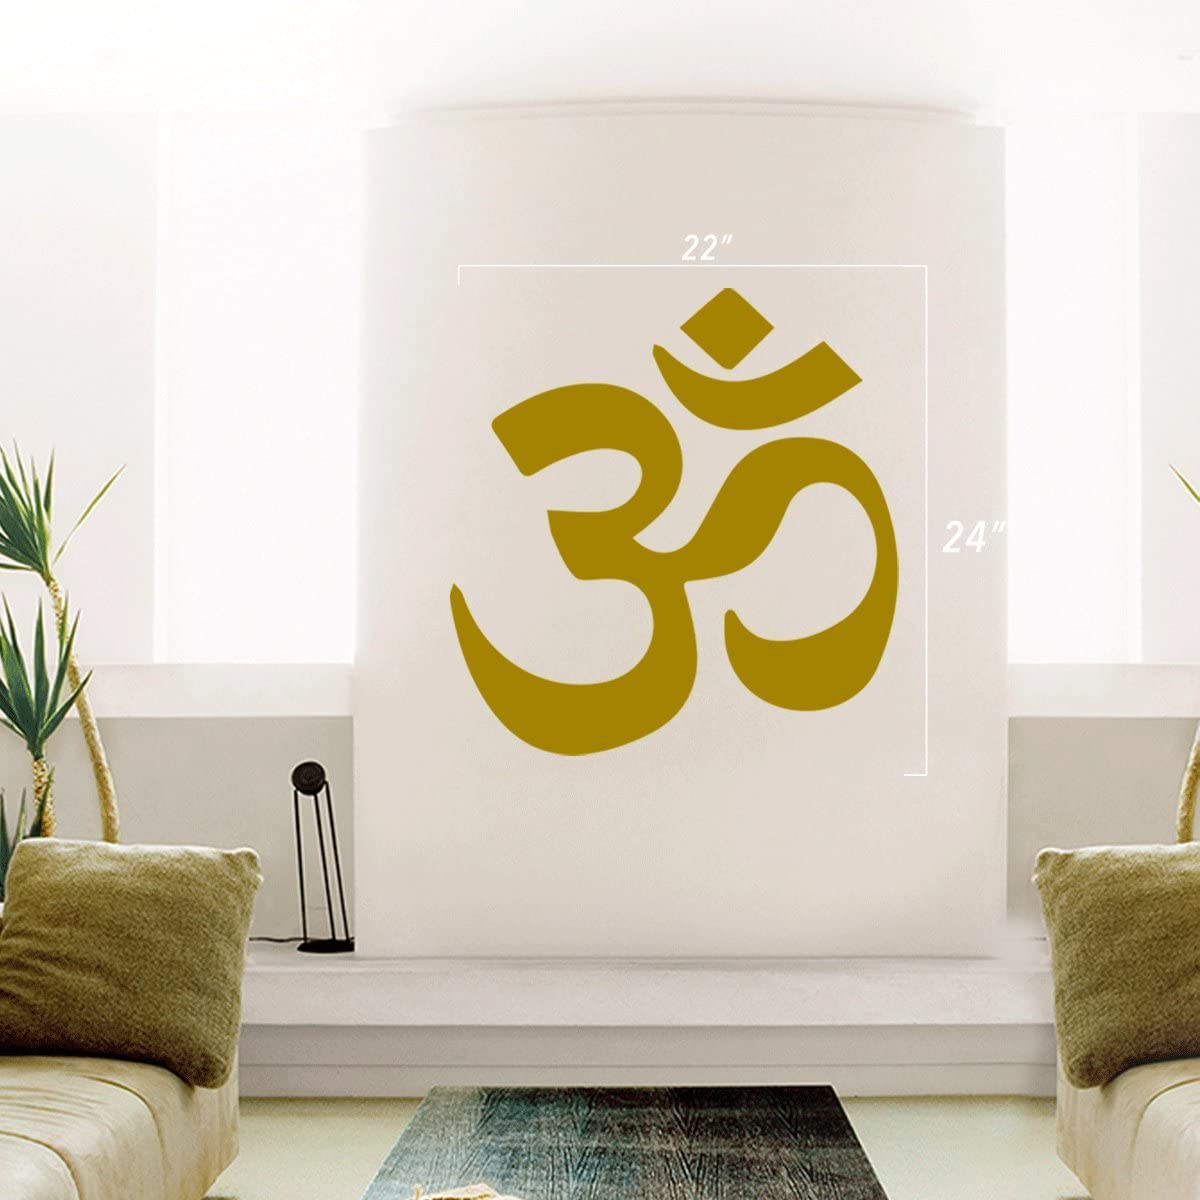 Doors Red StickAny Car and Auto Decal Series Om Zen Logo Sticker for Windows Hoods